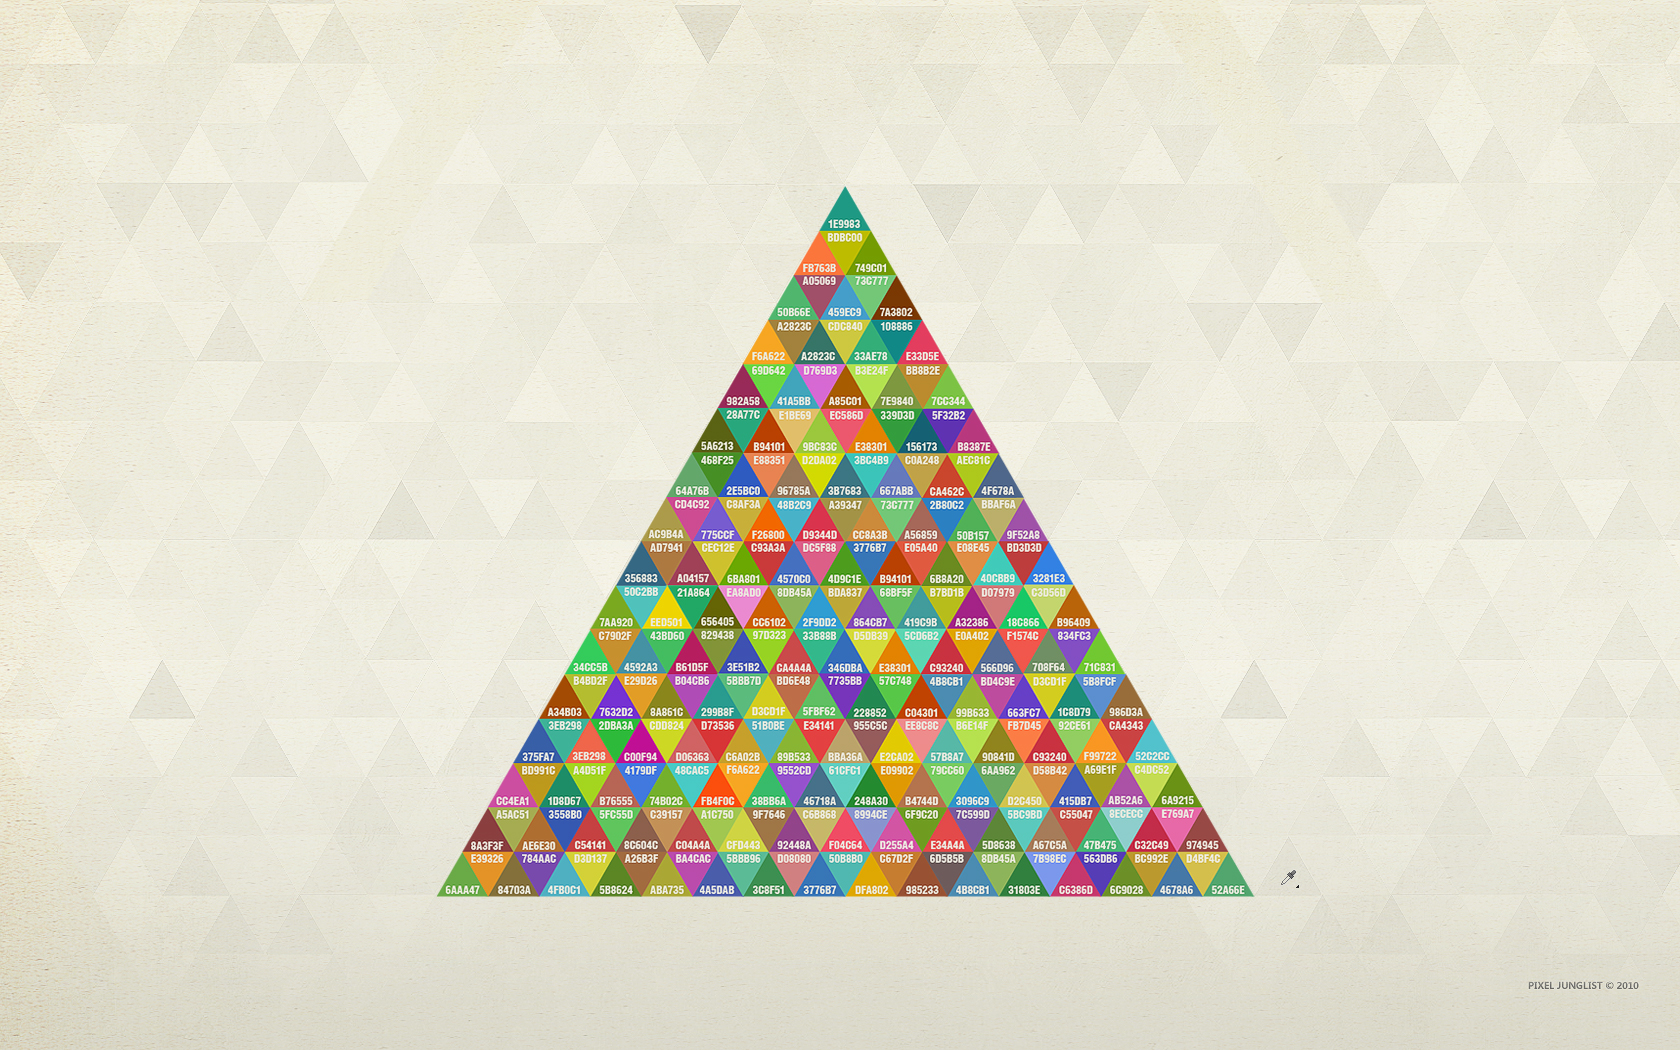 triangle_wallpaper_by_pixel_junglist-d32781s